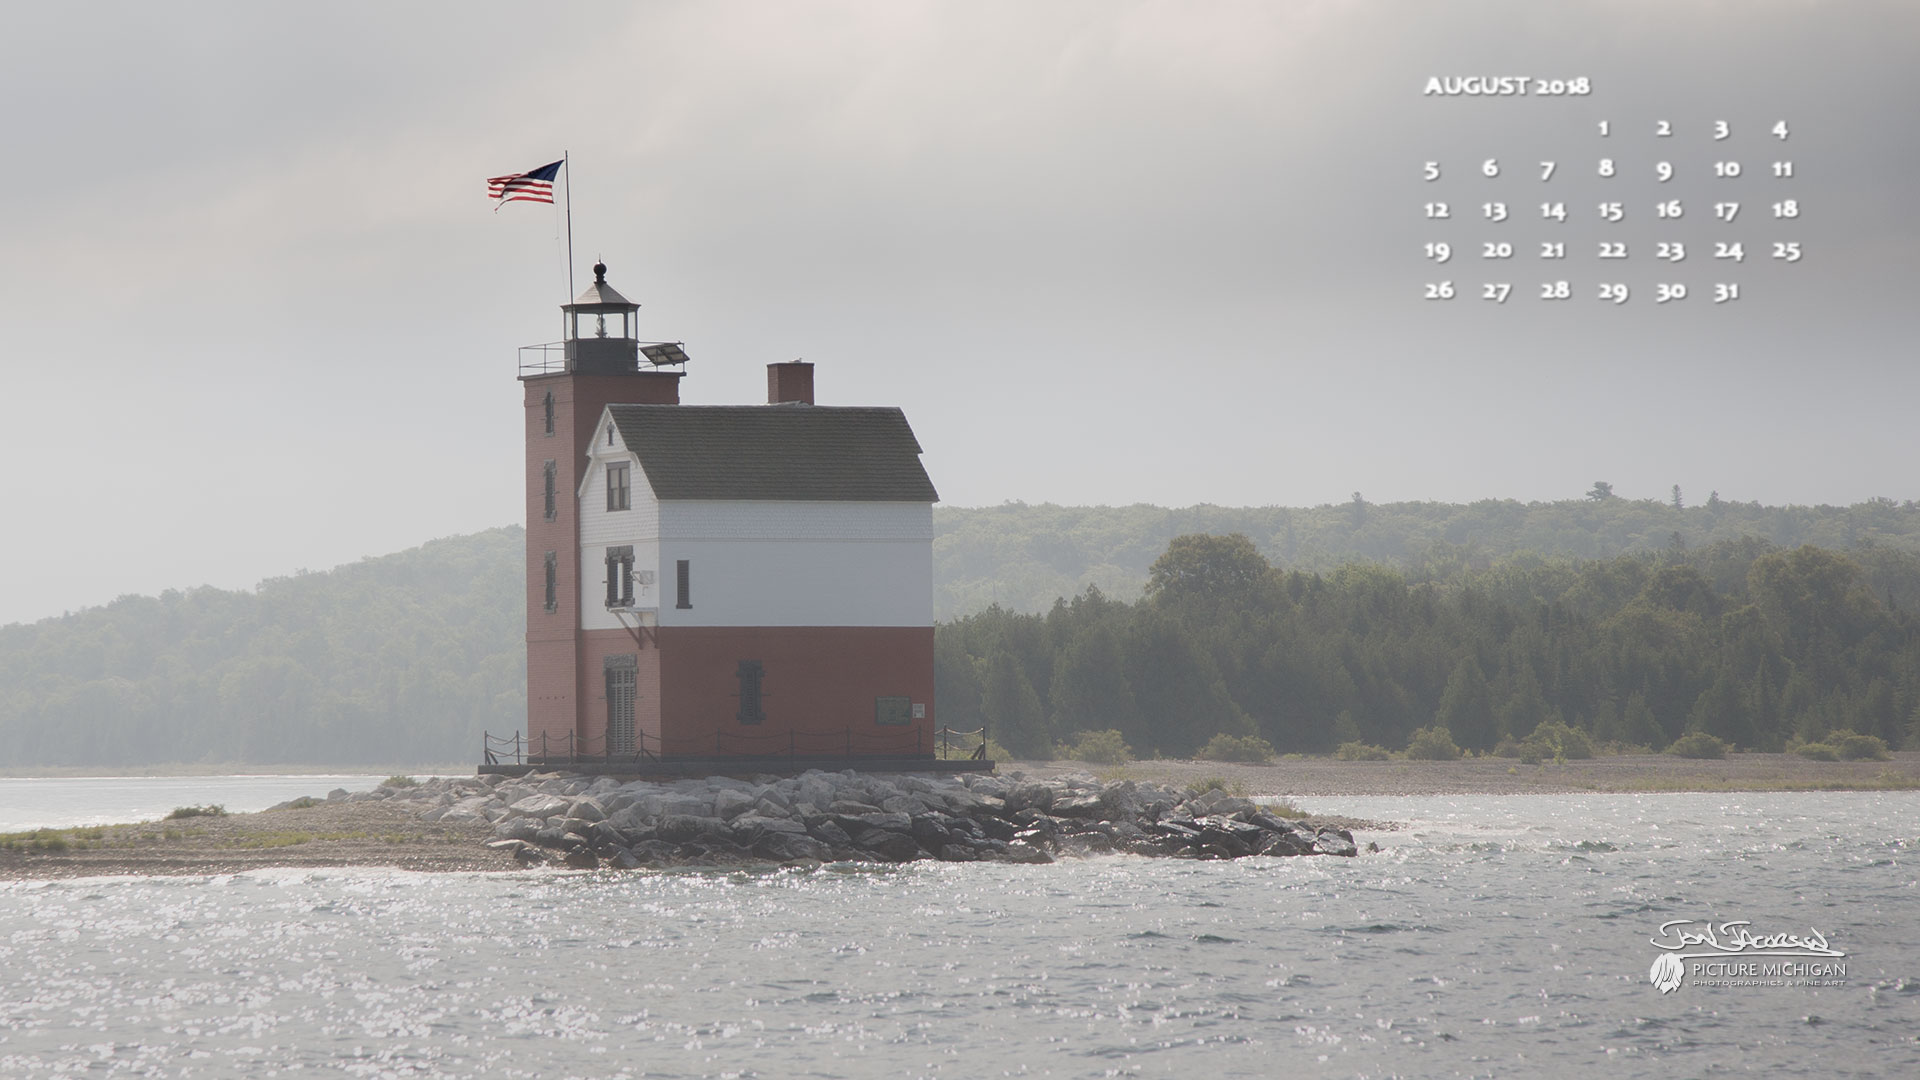 Round Island Light near Mackinac Island - August 2018 Picture Michigan Calendar Desktop Wallpaper